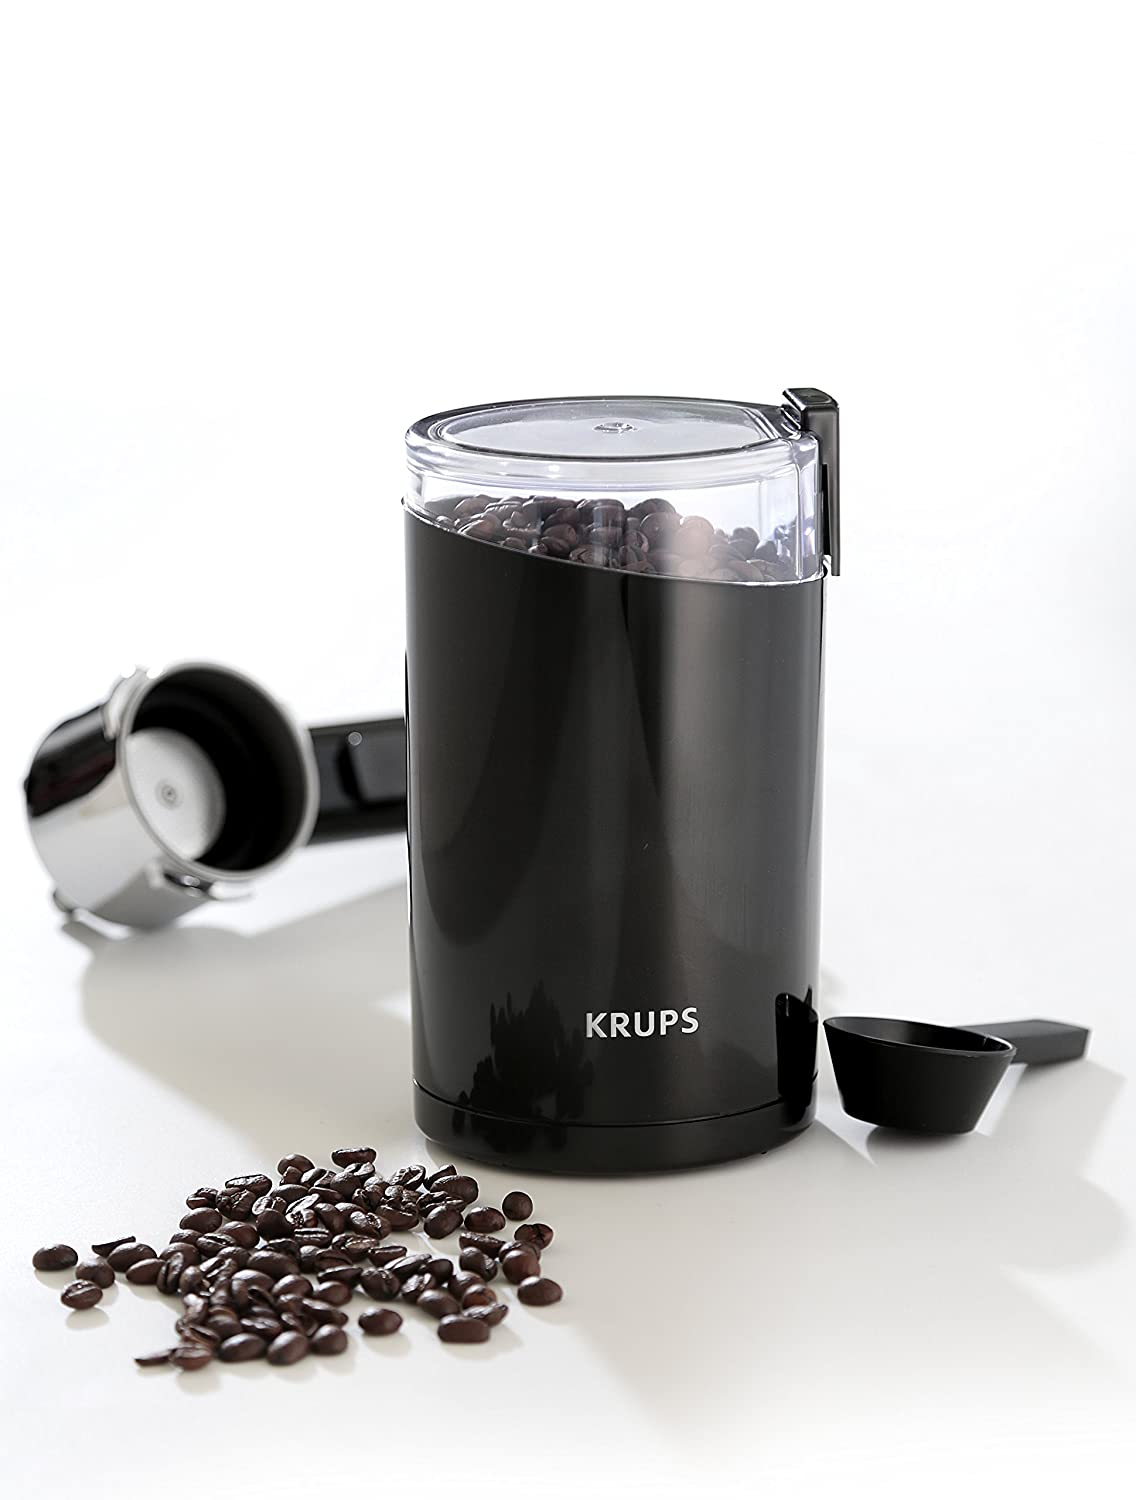 Krups Electric Spice and Coffe...